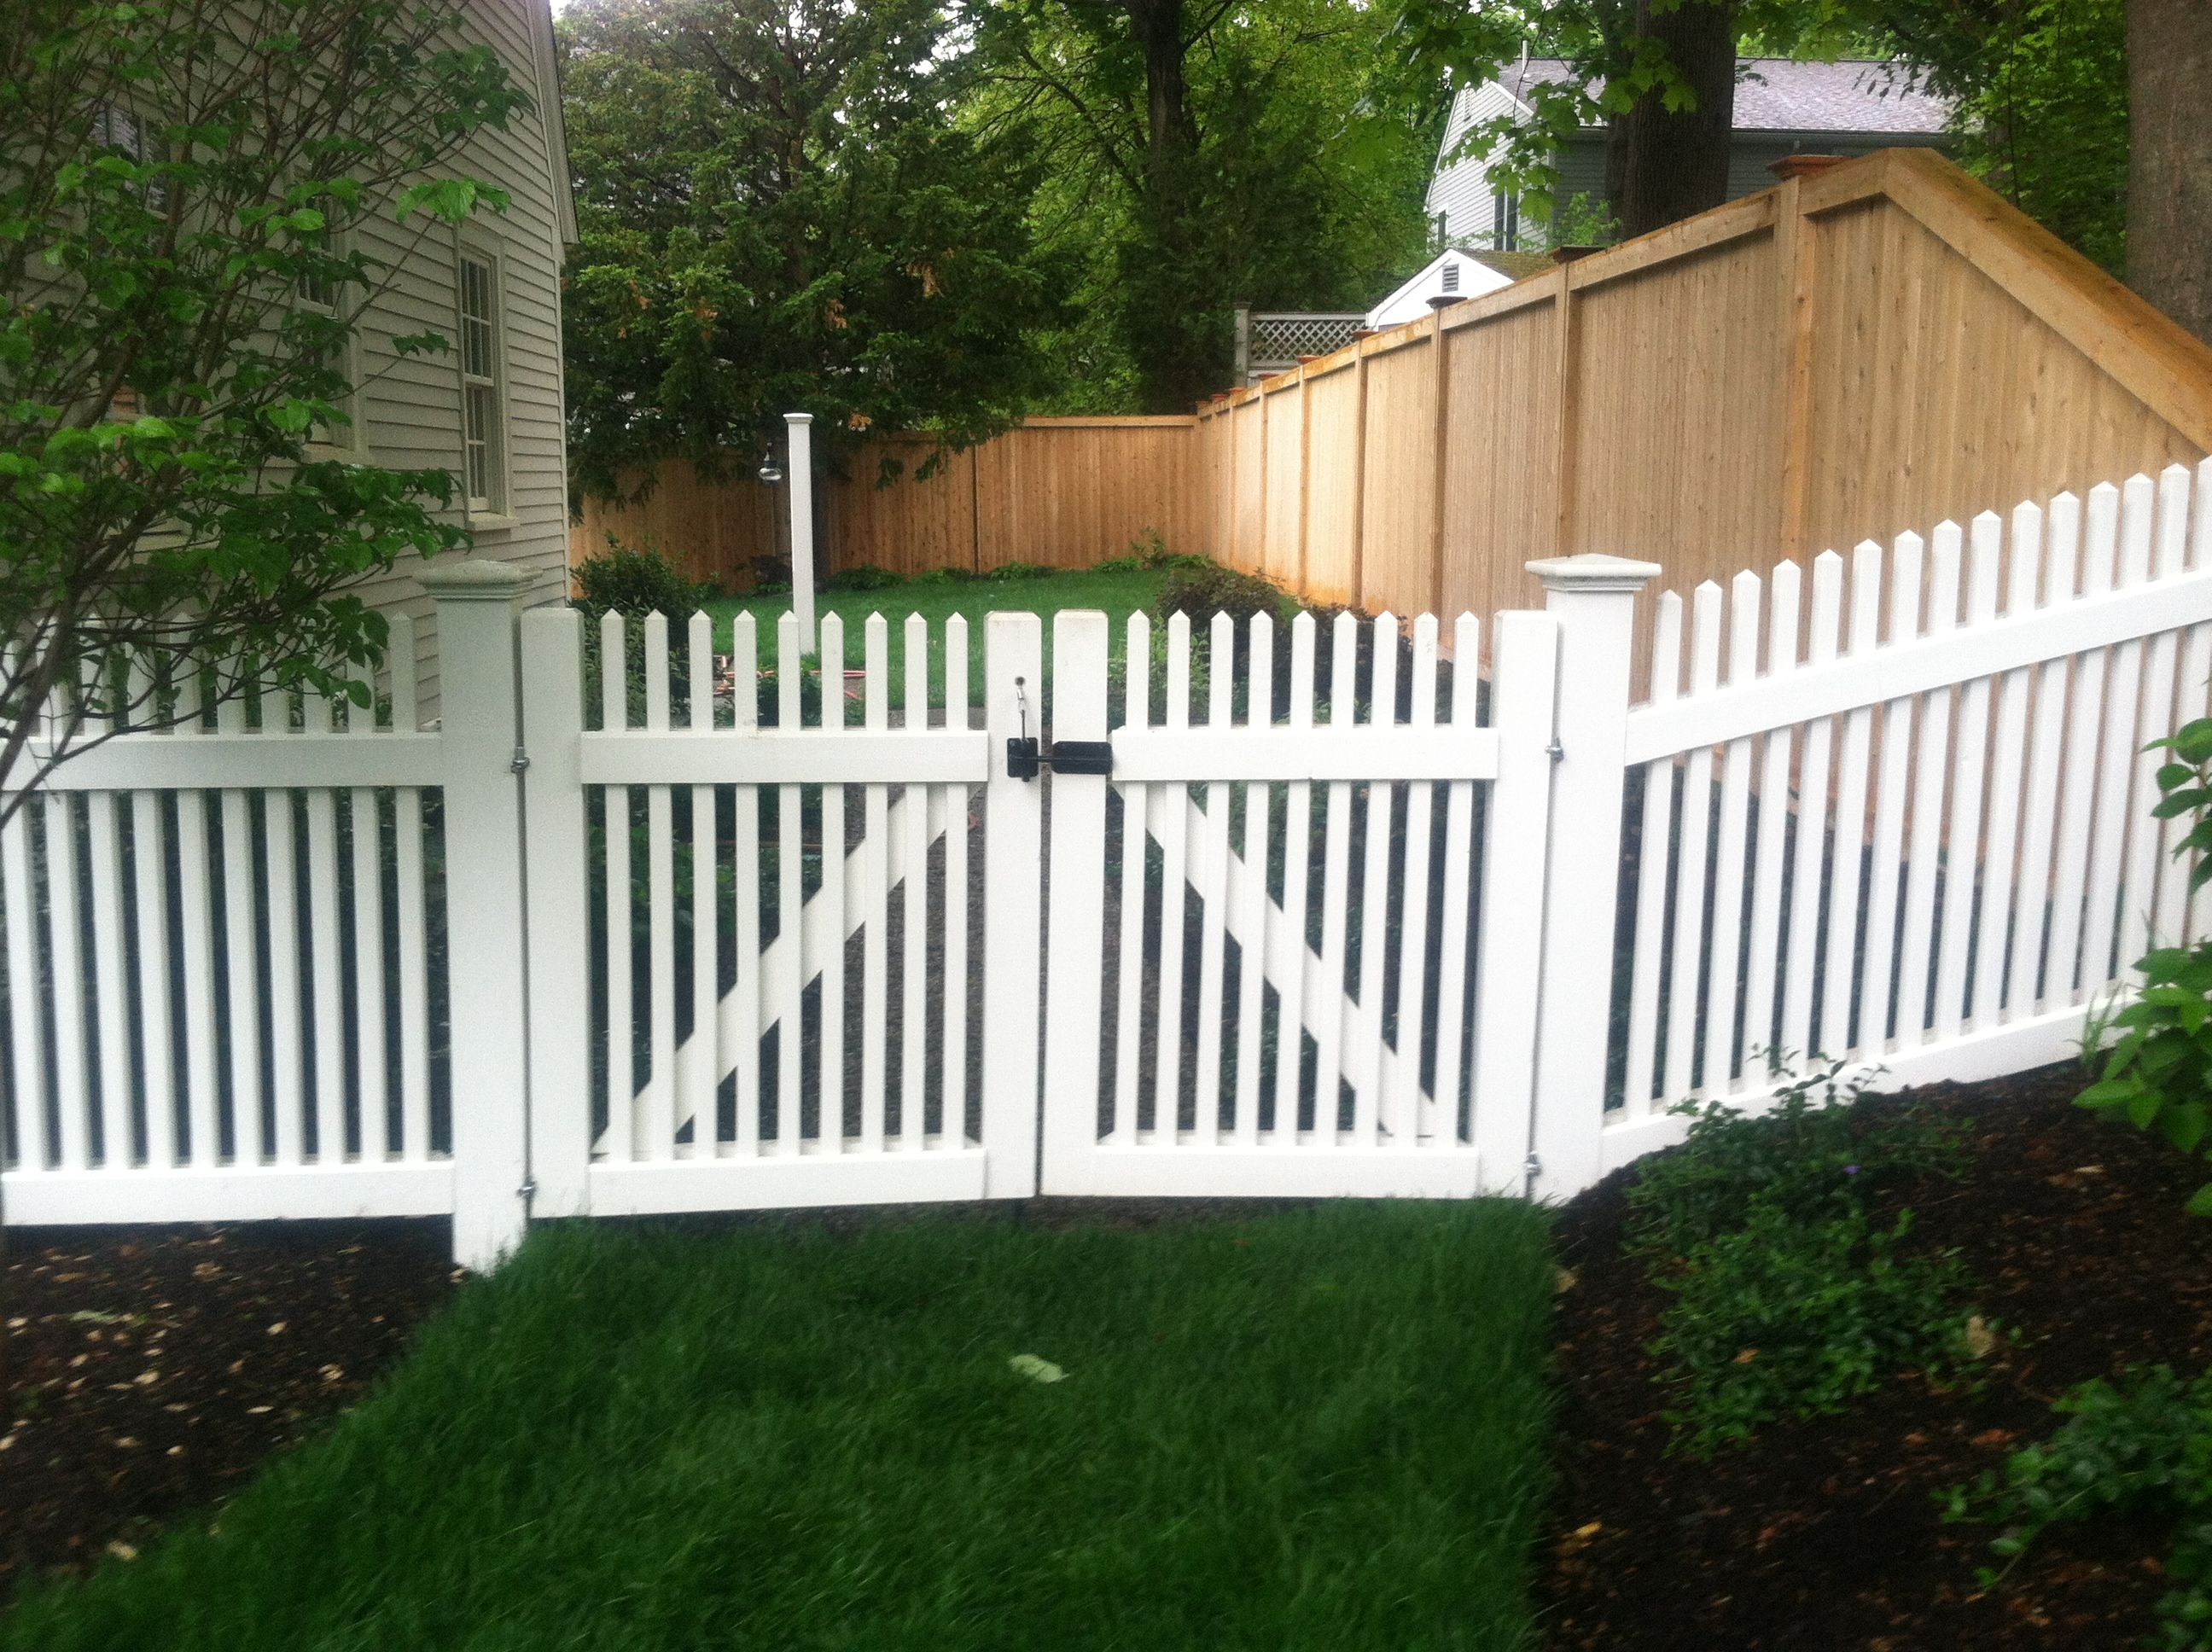 42 High Cedar Spoke Fence And Double Gate Stained White Dove White Garden Fence Backyard Fences Garden Fencing Uk